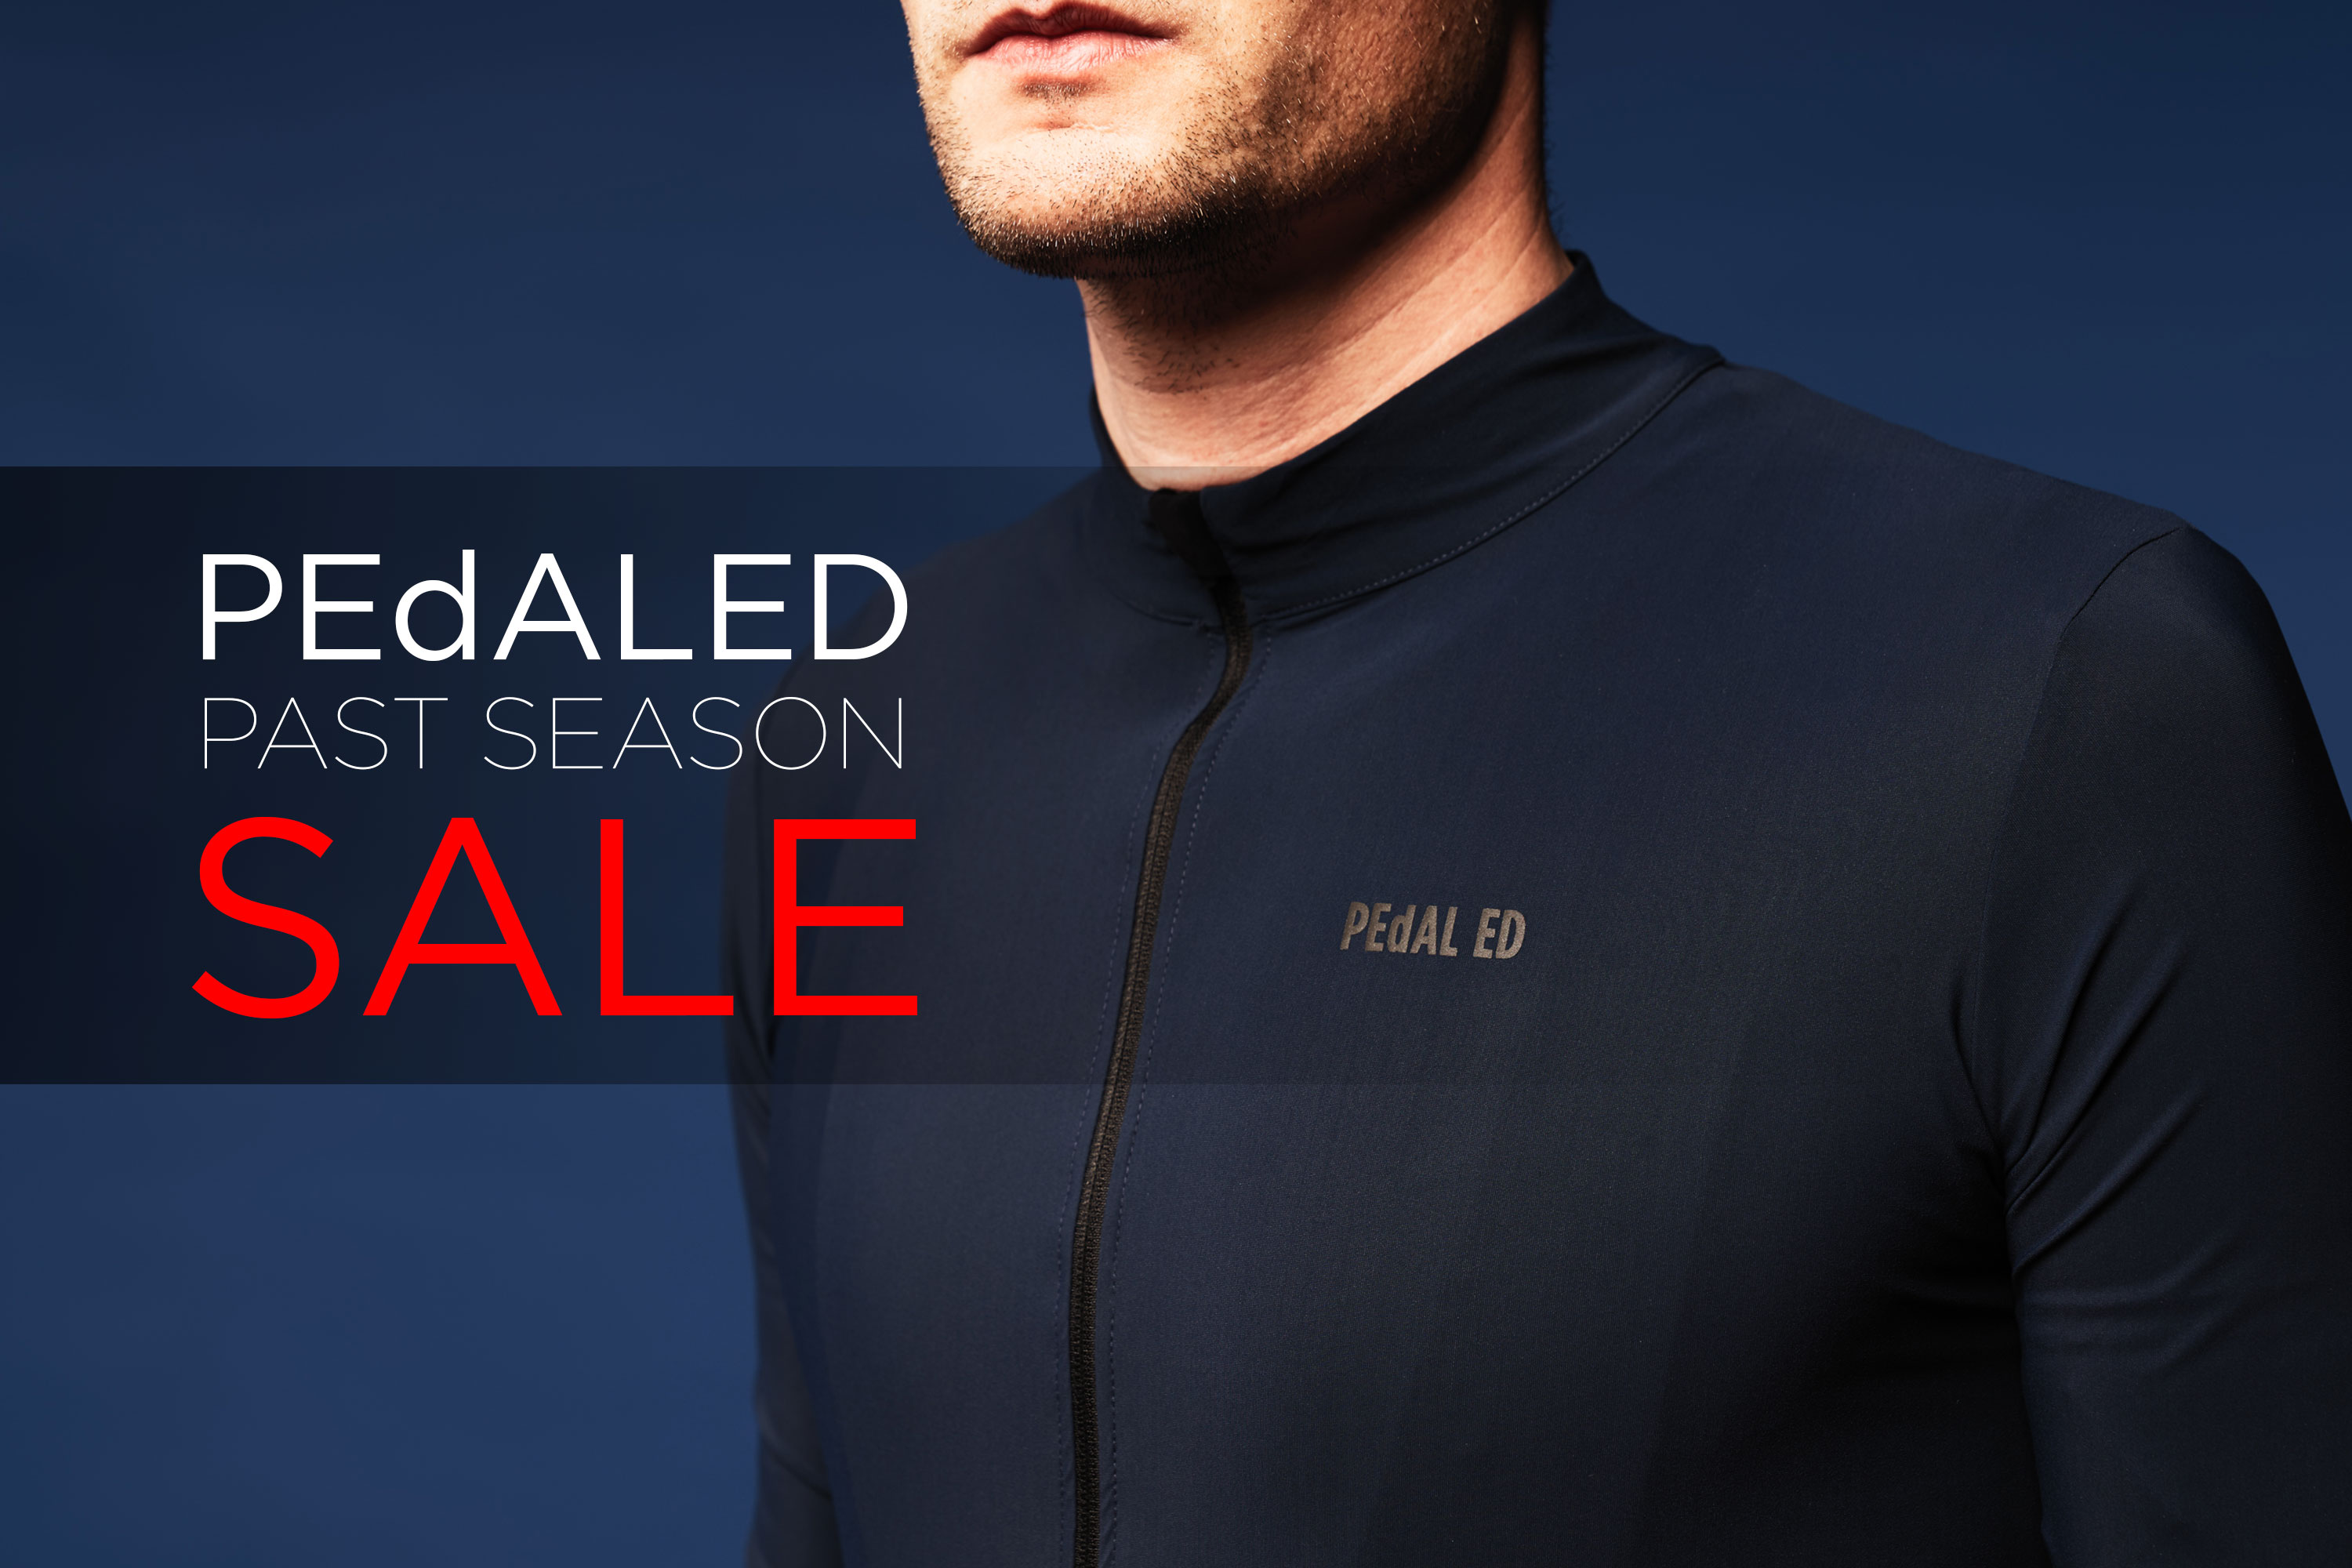 PEdALED Past Season Clearance Sale